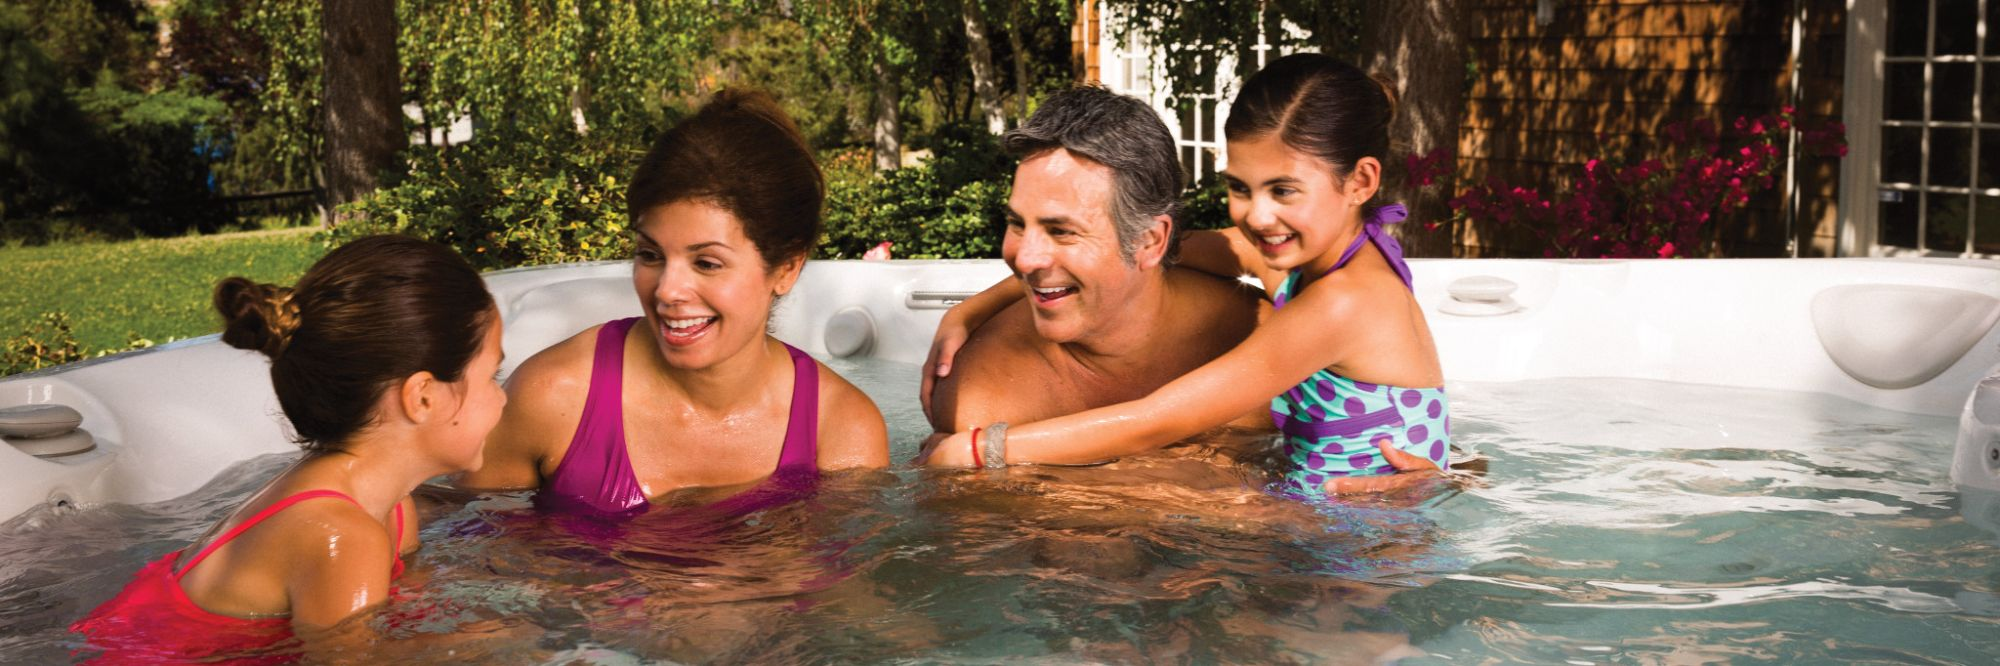 Family Enjoying Hot Tub